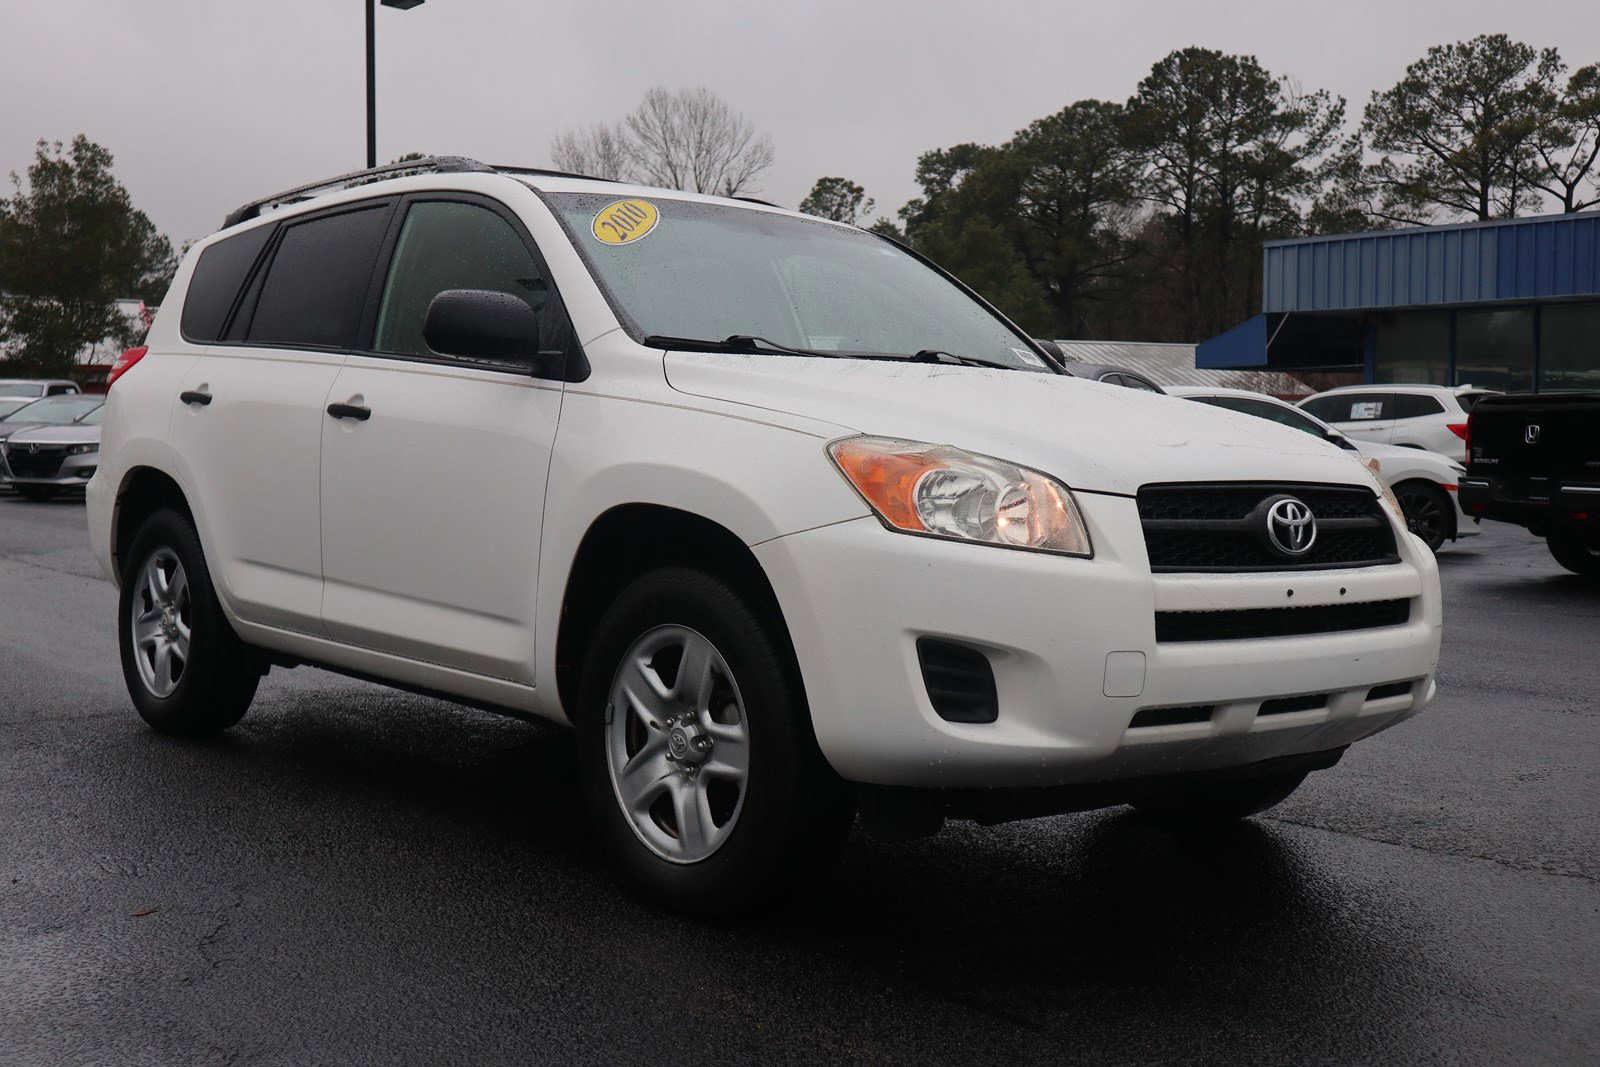 Pre-Owned 2010 Toyota RAV4 FWD 4dr 4-cyl 4-Spd AT